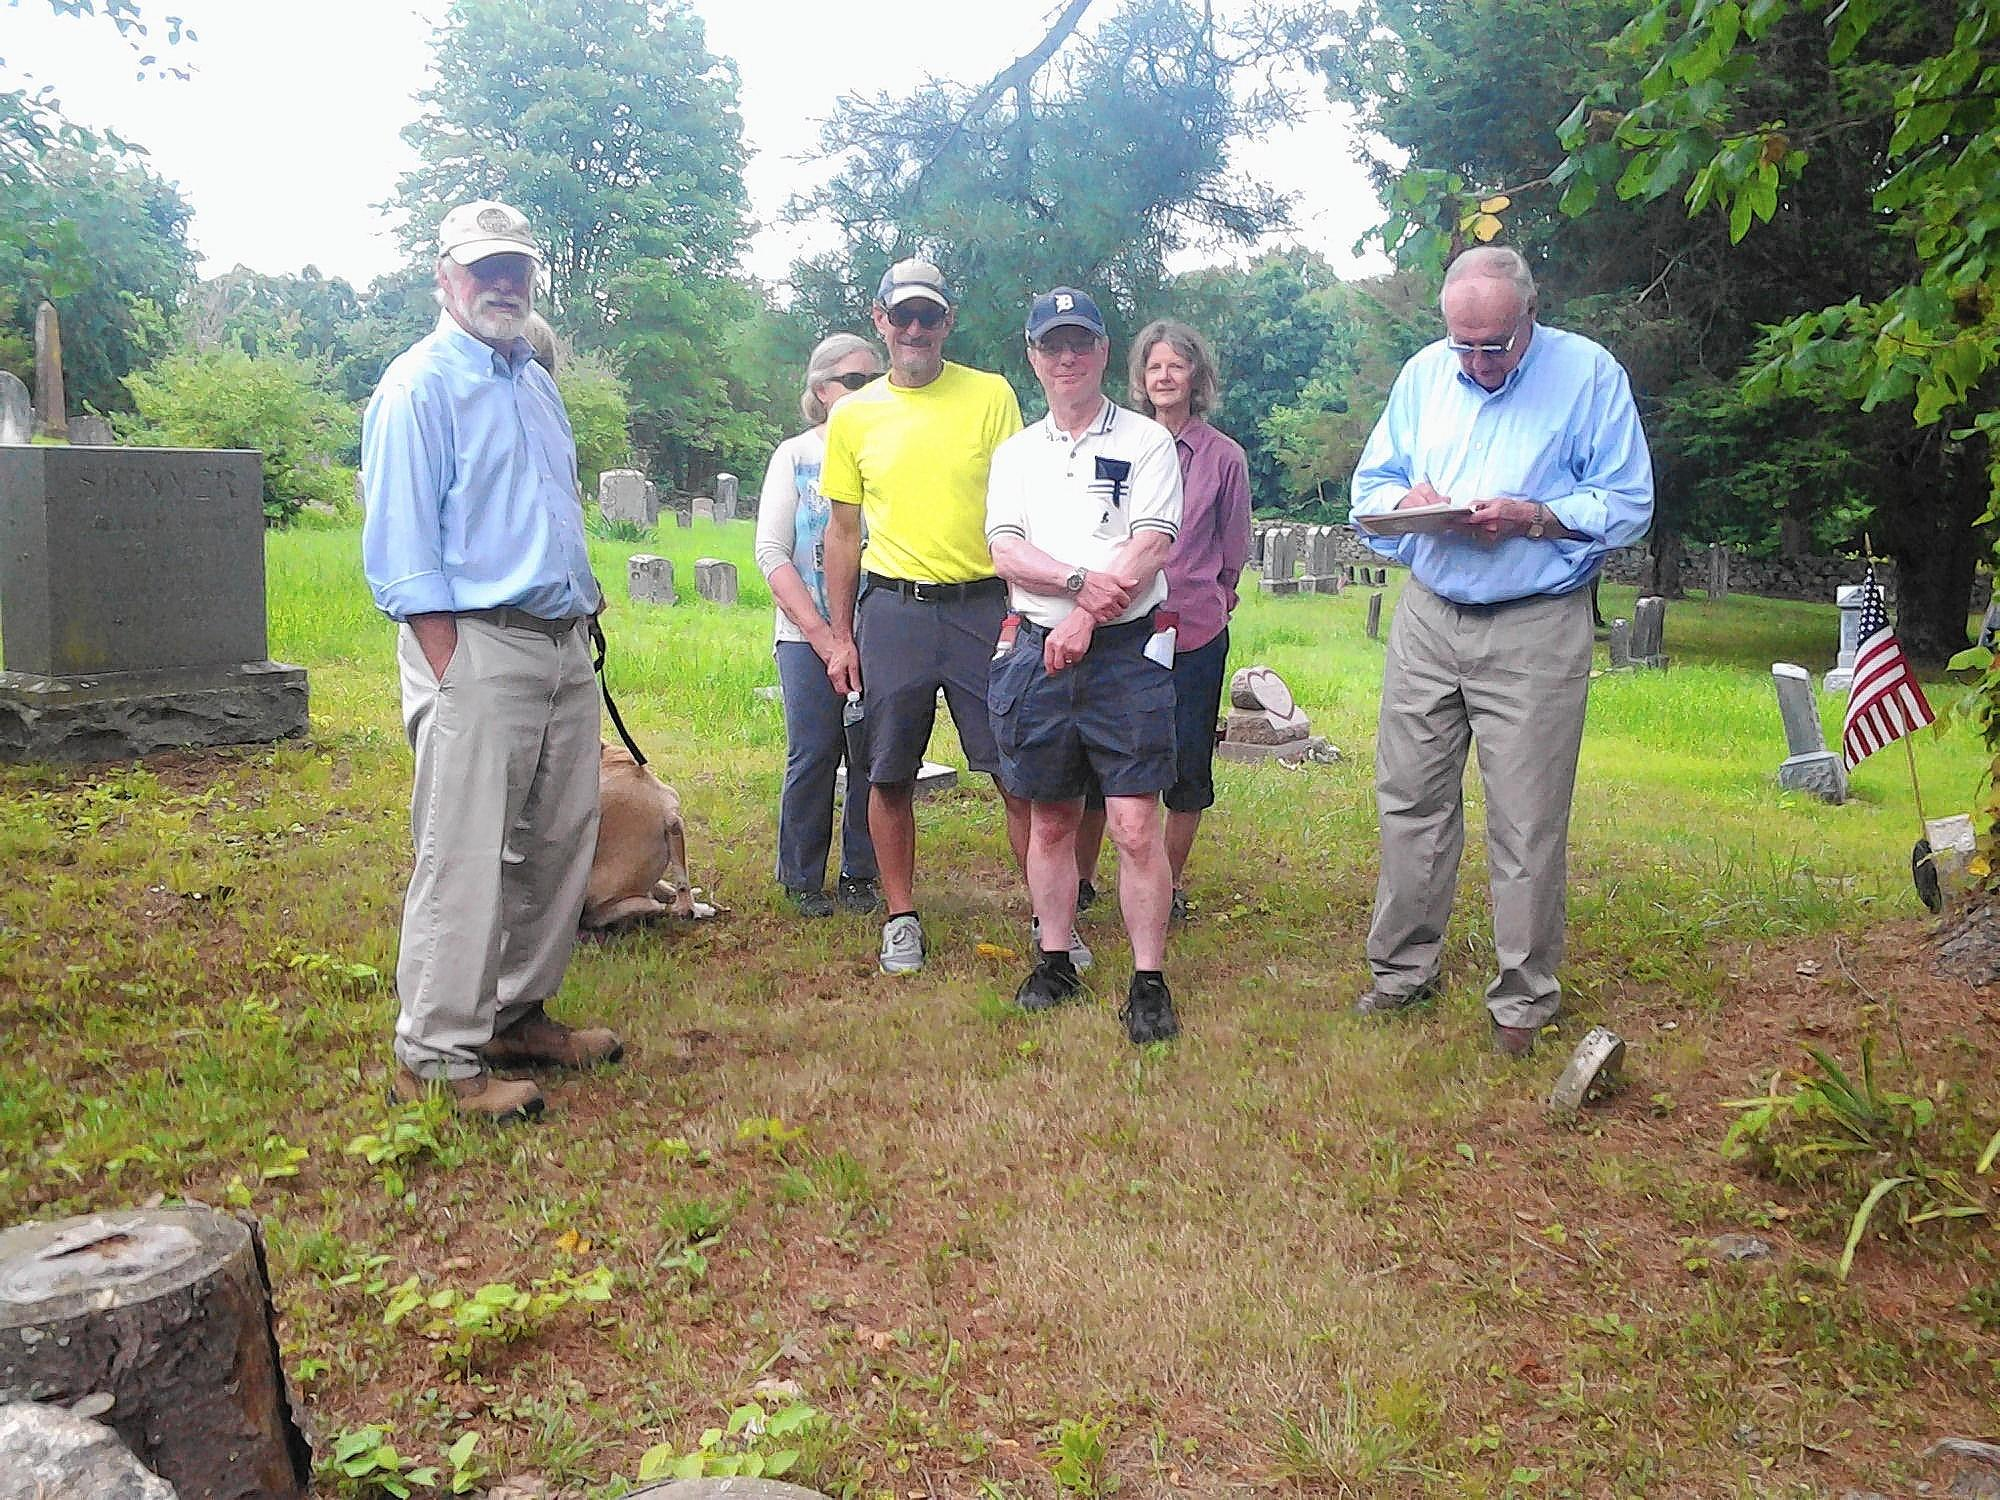 (L-r) John Barnowski, Stan Soby, Gary Walter and Ralph Adkins shared interest in the ancient burial grounds of descendents of settlers. The first grave is dated circa 1815, according to Nicholas Norton, who owns the land. Photo by Merja H. Lehtinen.